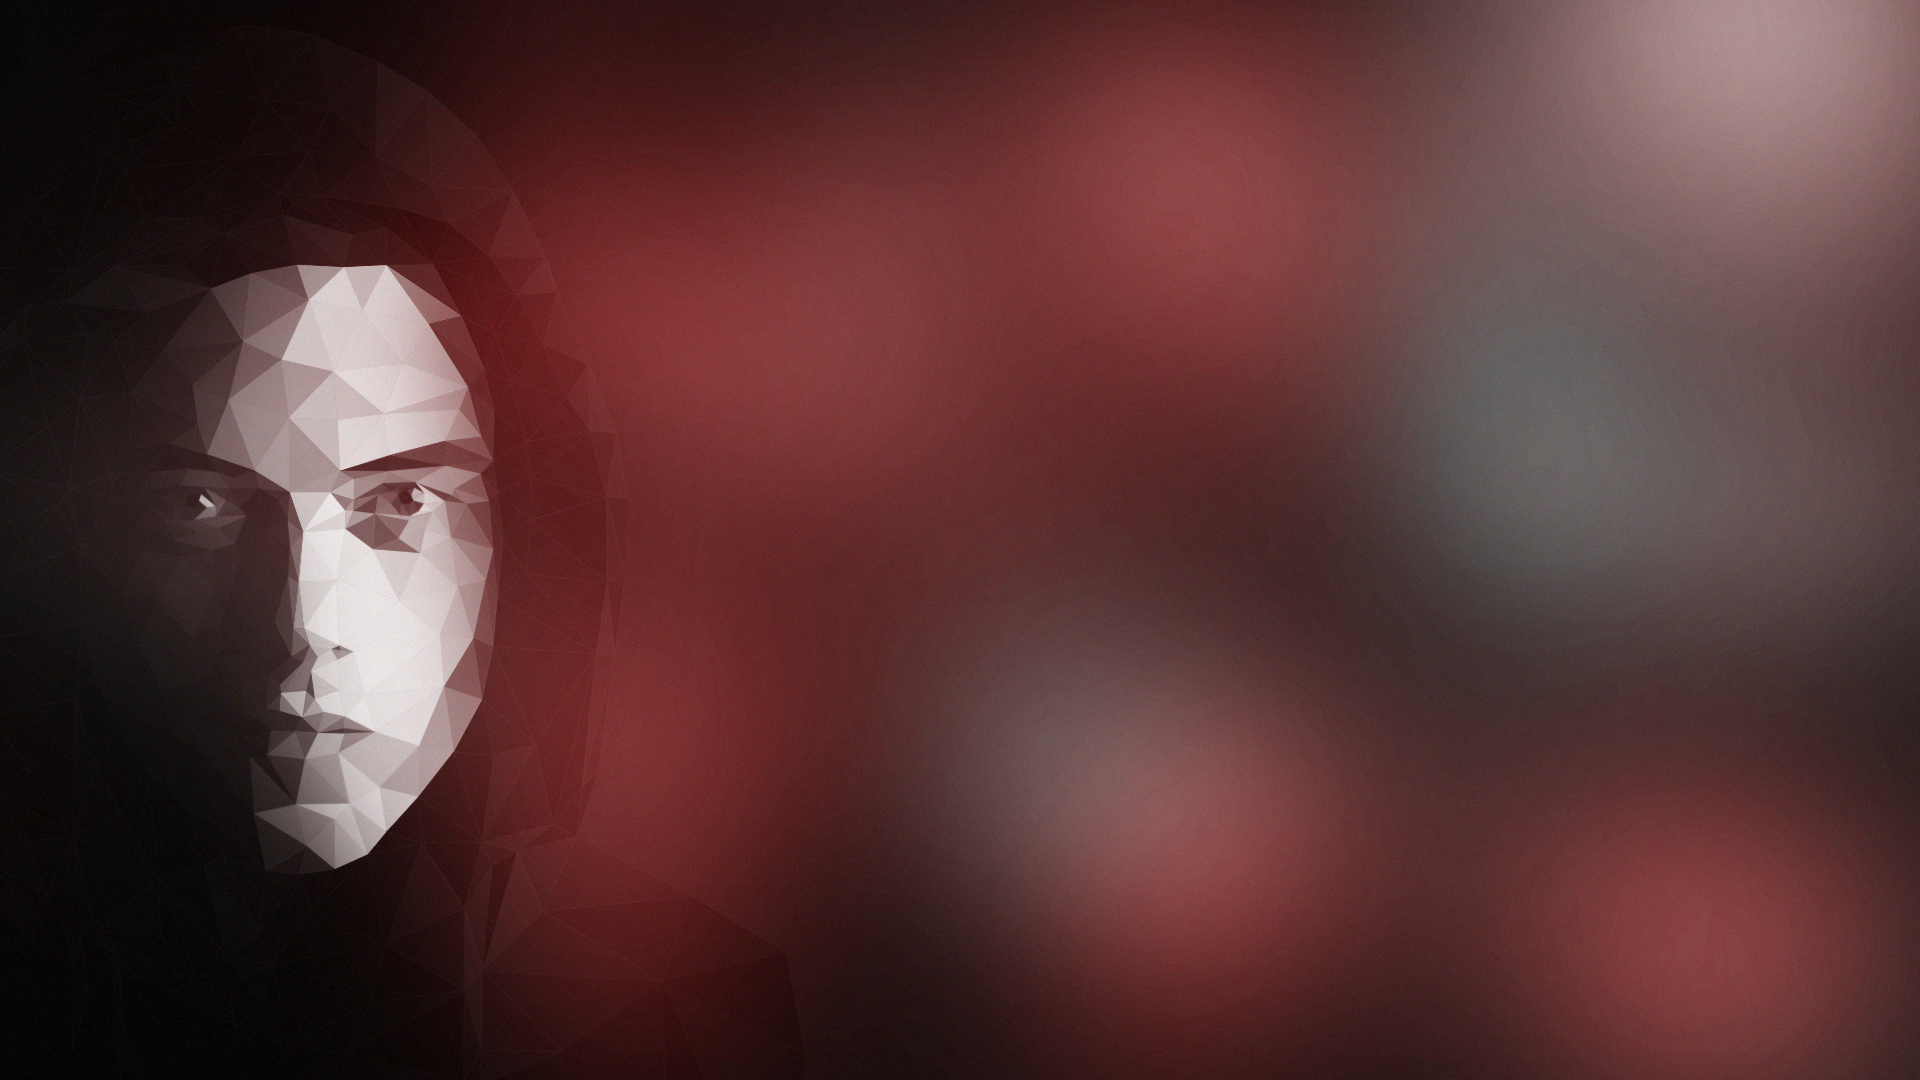 Mr Robot Digital Art